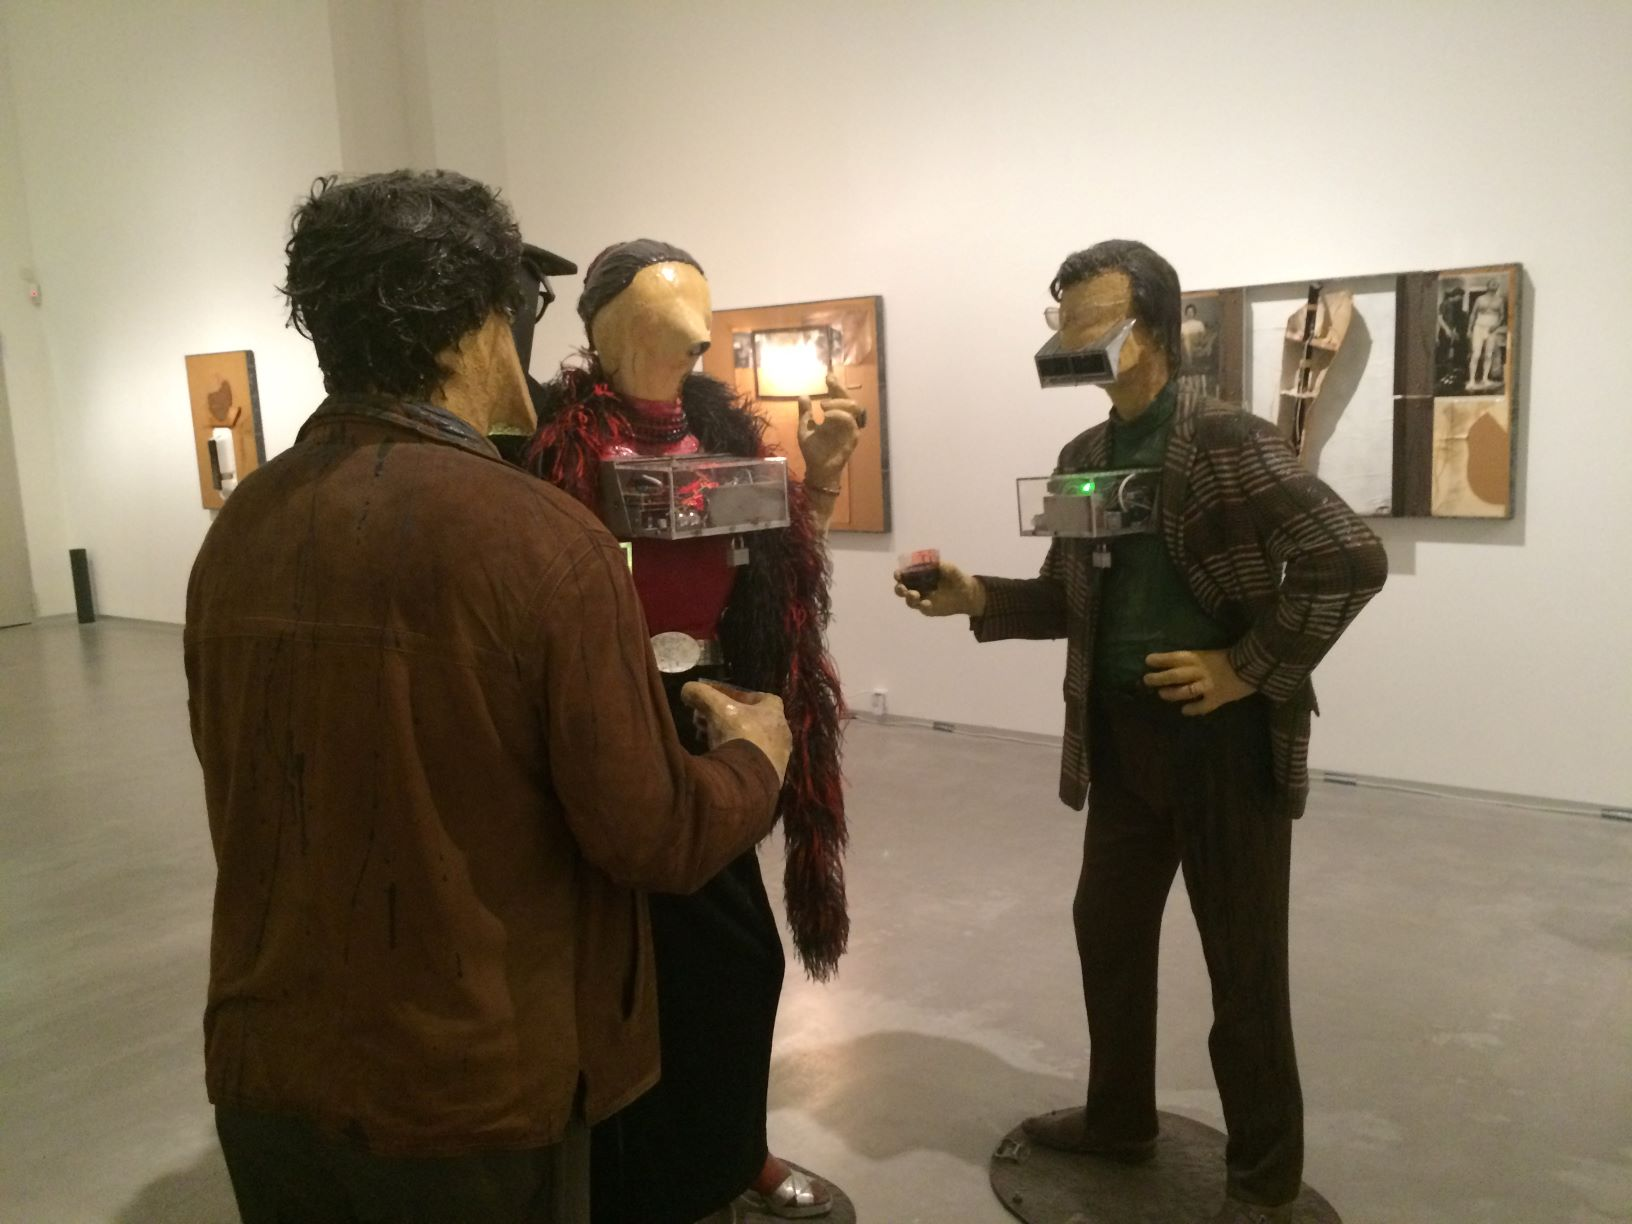 Art installation inside of the Berlinische Galerie. -- Edward and Nancy Reddin Kienholz's 'The Art Show.' This one was a parody of the opening night of an art exhibition, in which the mannequins had tape recorder heads and would play back soundbites on just how impressed or nonplussed they were with the show.